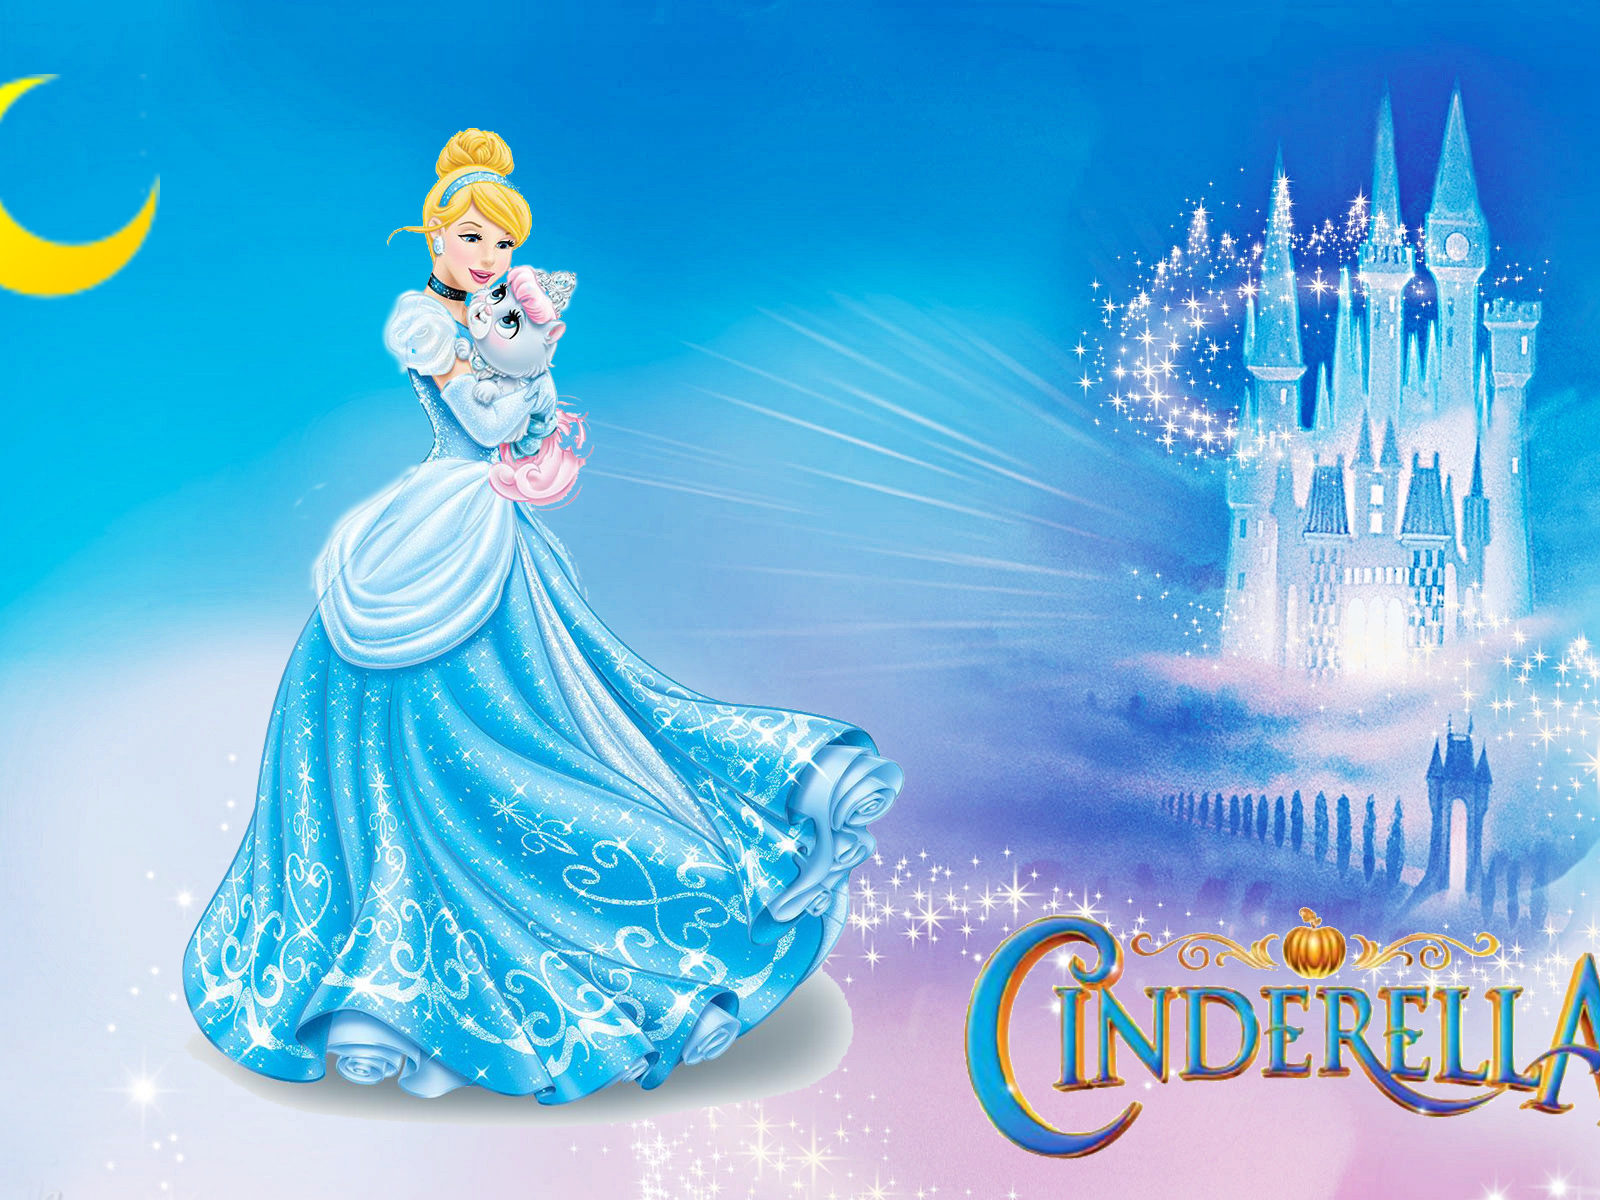 Walt Disney World Iphone Wallpaper Princess Cinderella Lovely Fairy Tale Cartoon Walt Disney